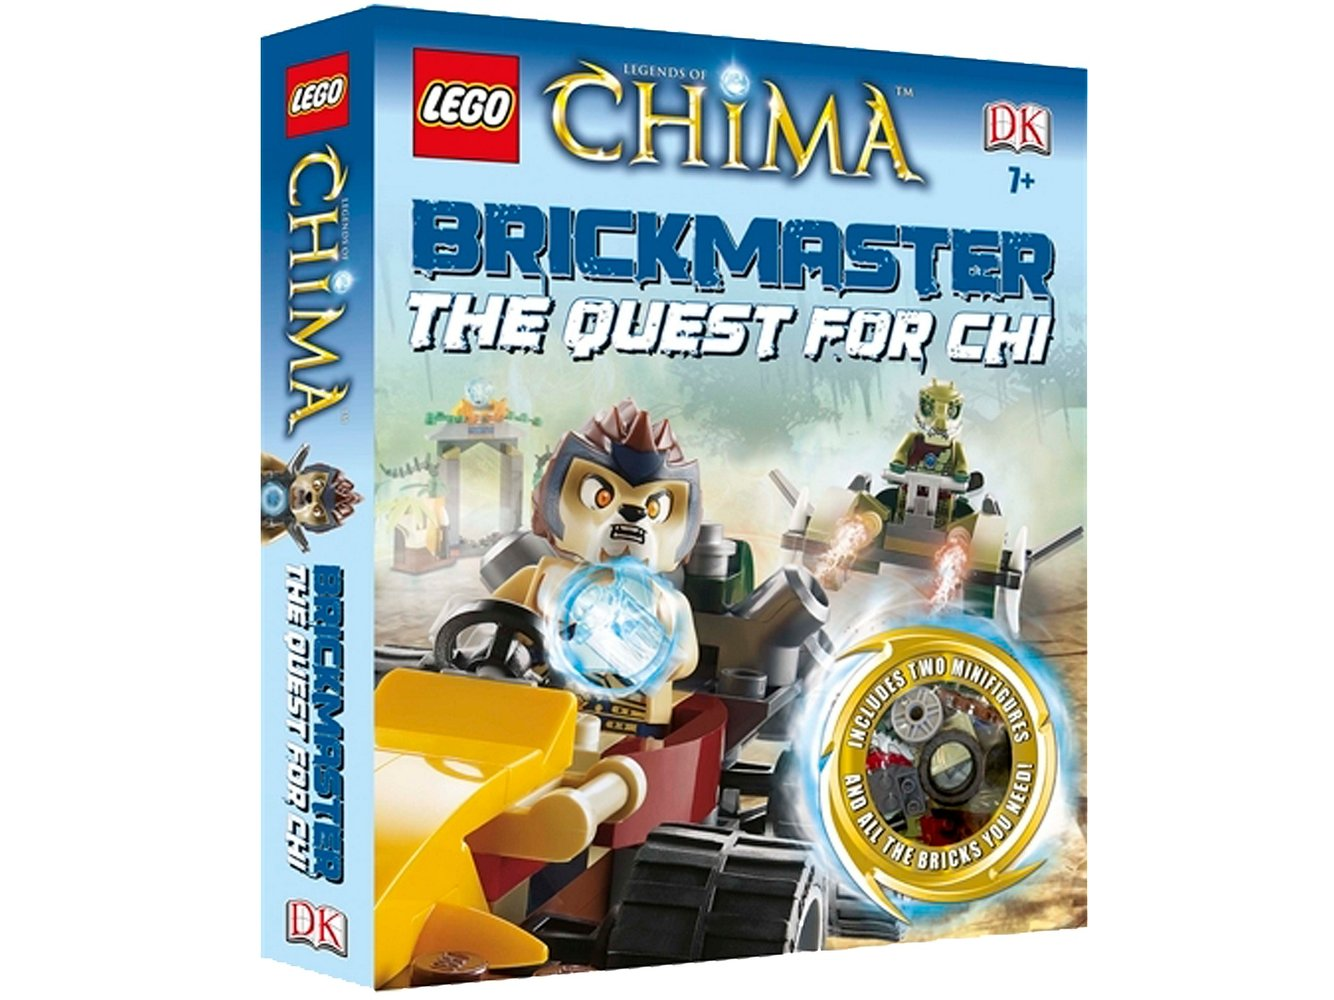 Legends of Chima: Brickmaster: The Quest for CHI